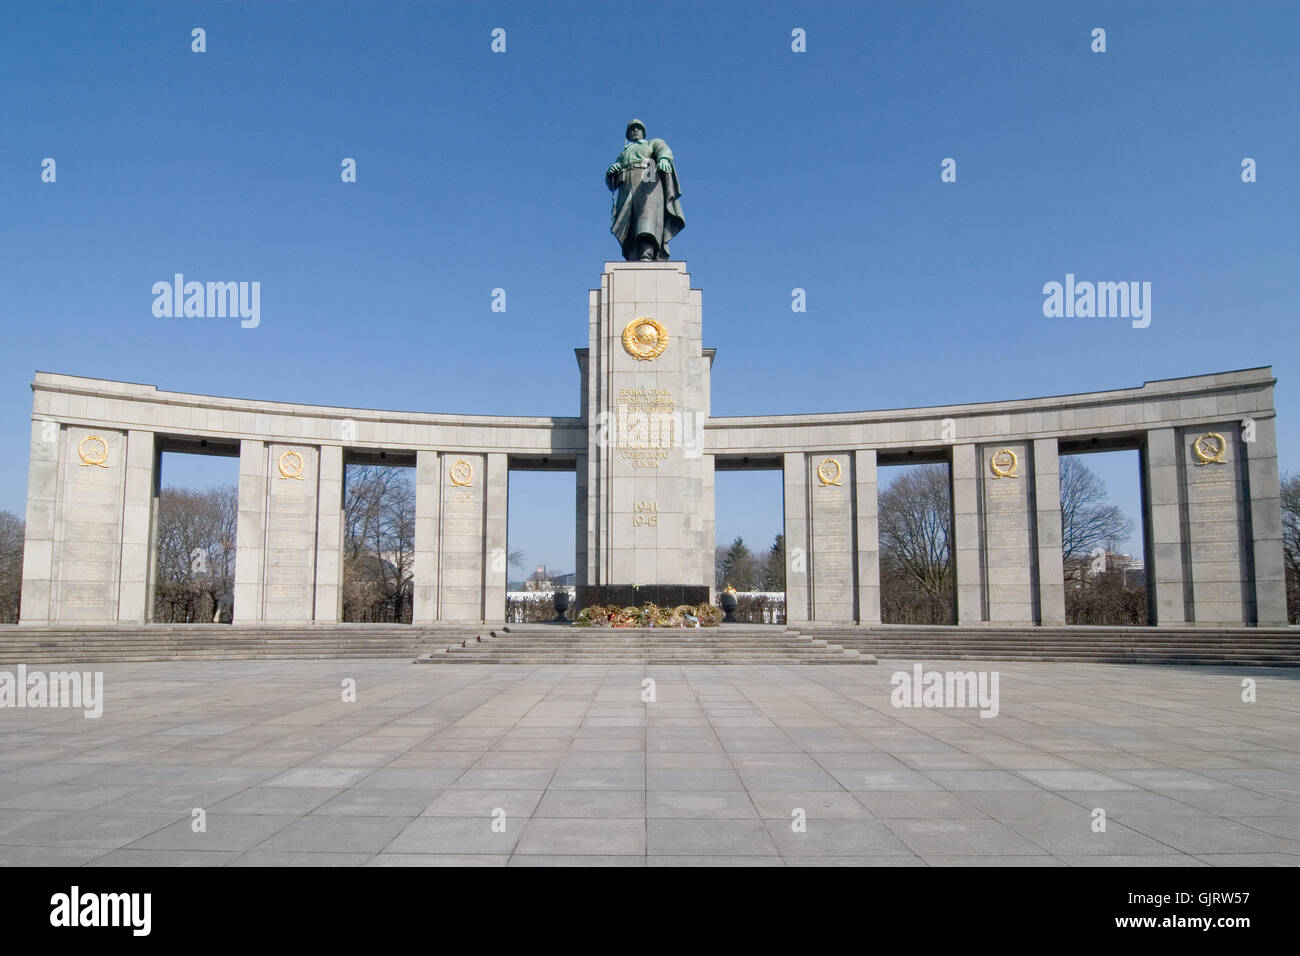 russians memorial - Stock Image